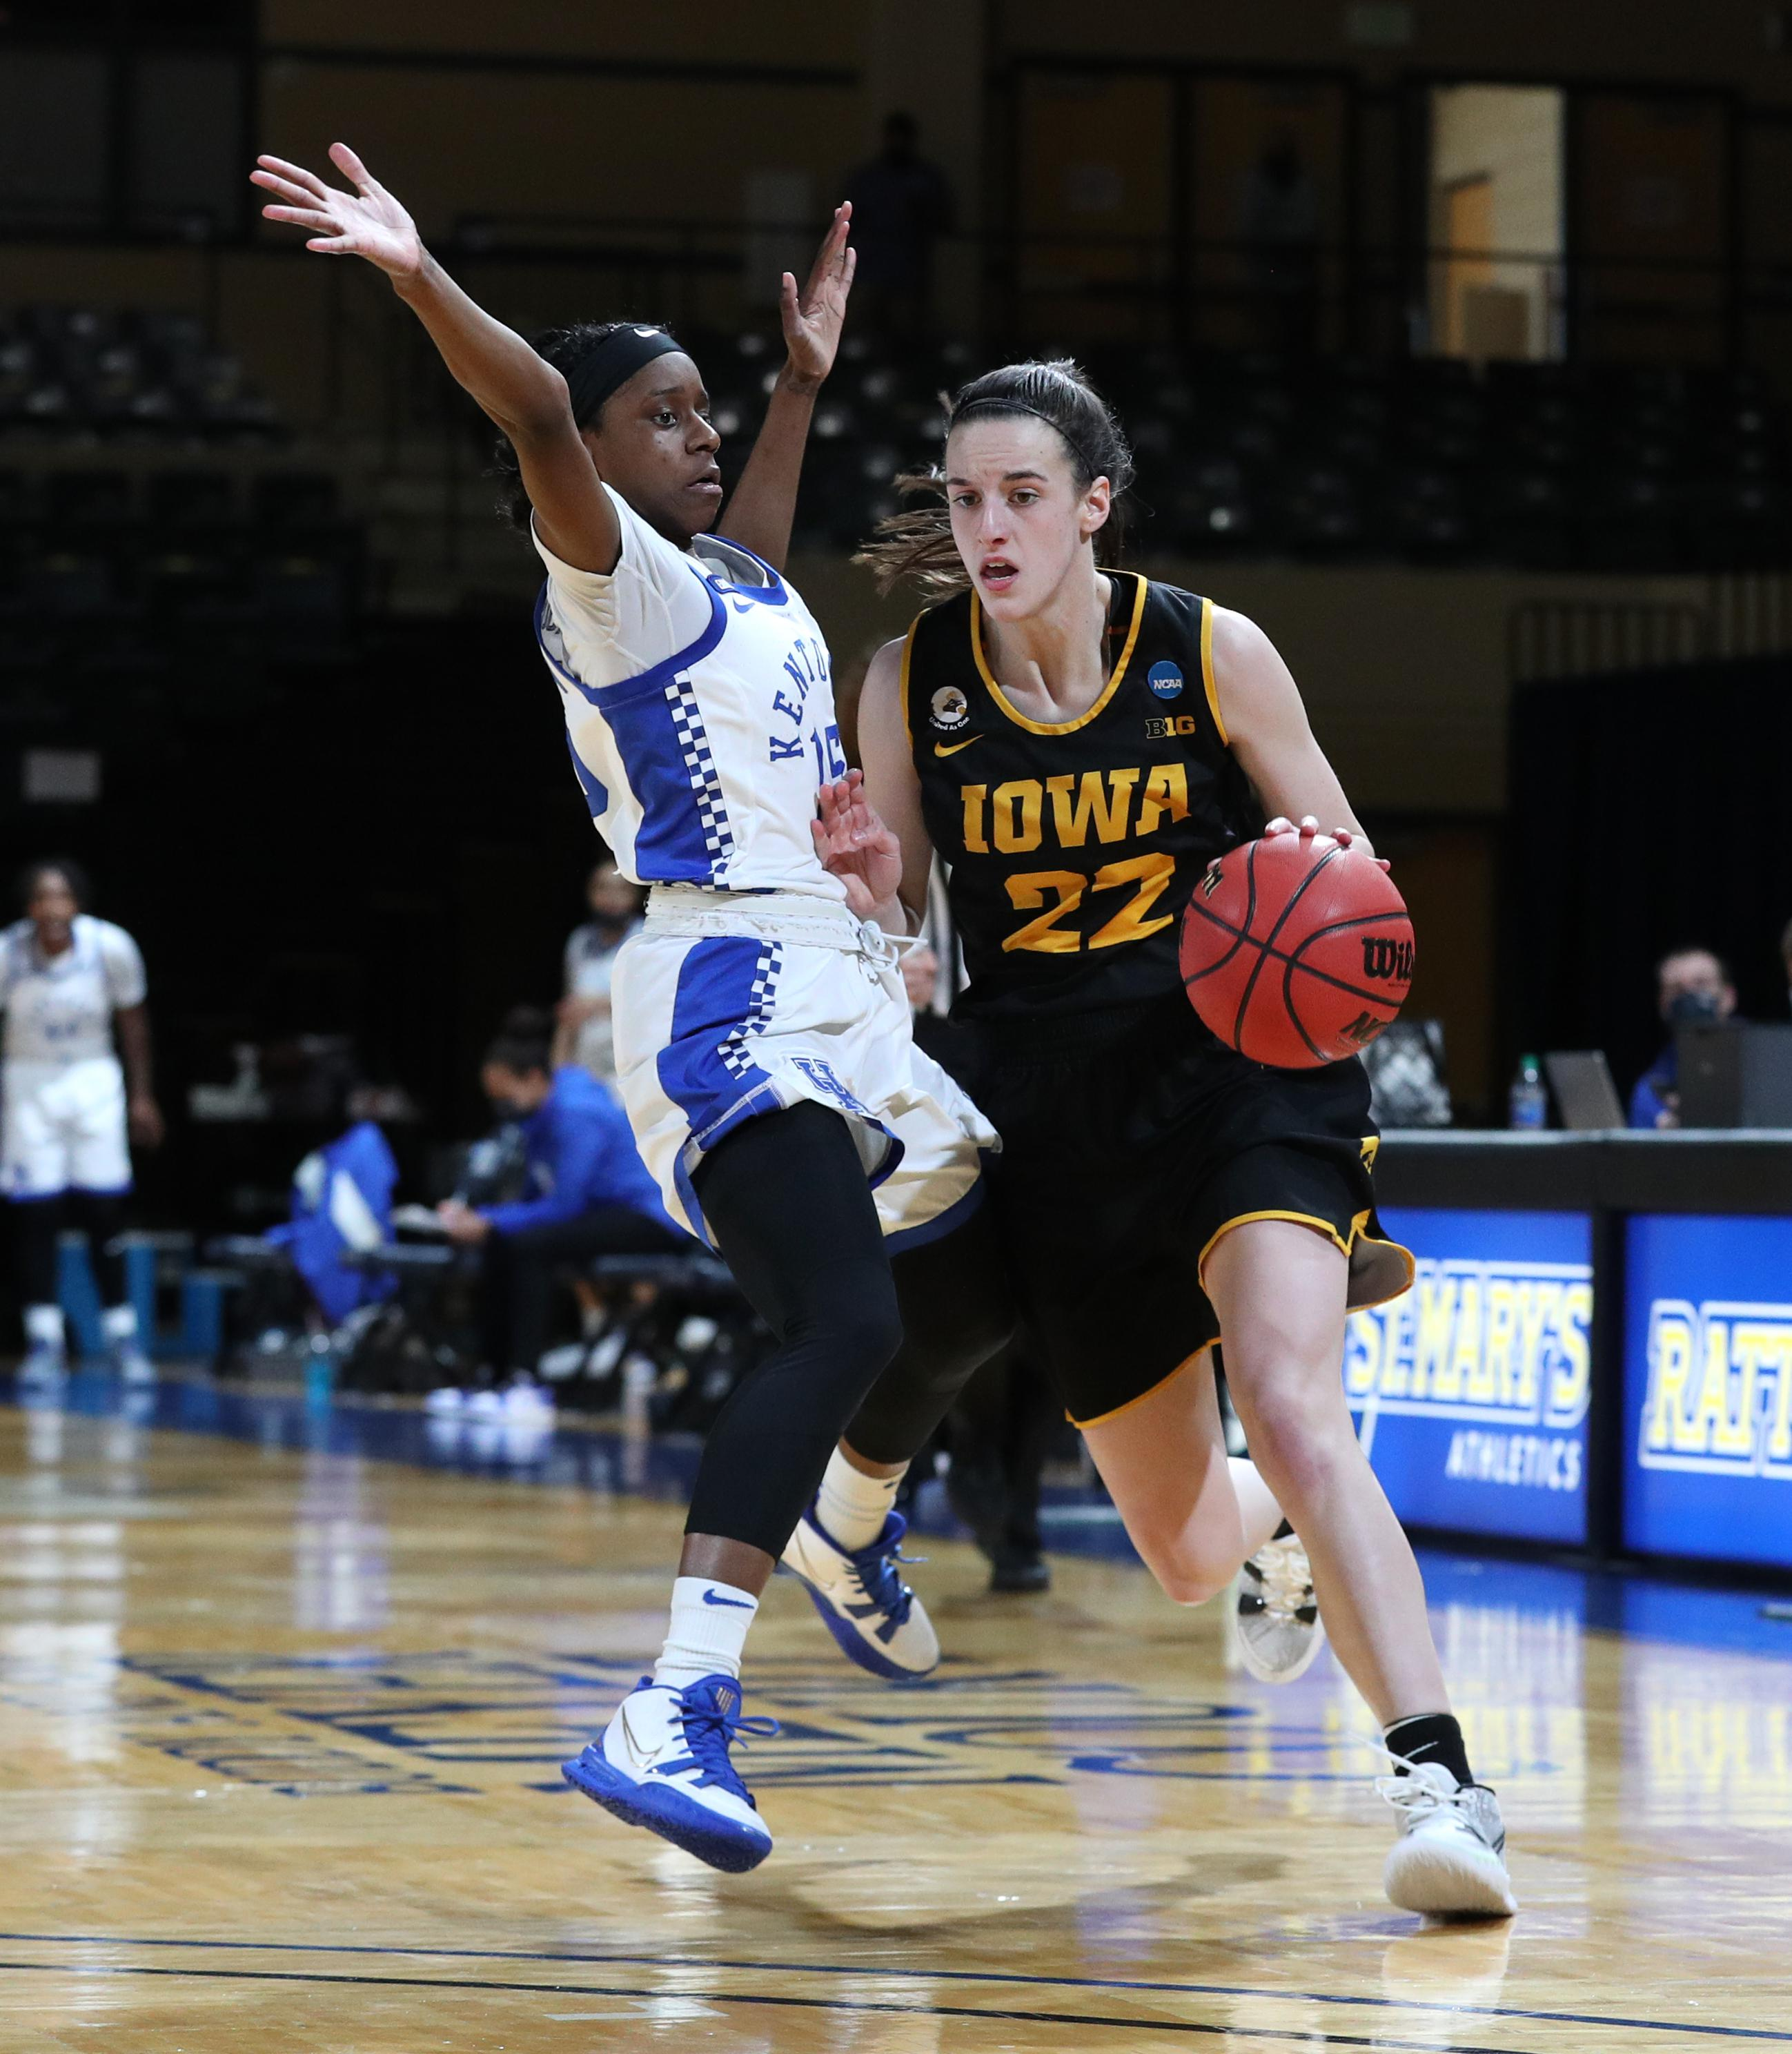 Iowa Hawkeyes guard Caitlin Clark (22) drives against Kentucky Wildcats guard Chasity Patterson (15) during the second round of the 2021 NCAA Women's Basketball Tournament Tuesday, March 23, 2021 at Bill Greehey Arena in San Antonio, TX. (Stephen Mally/ha